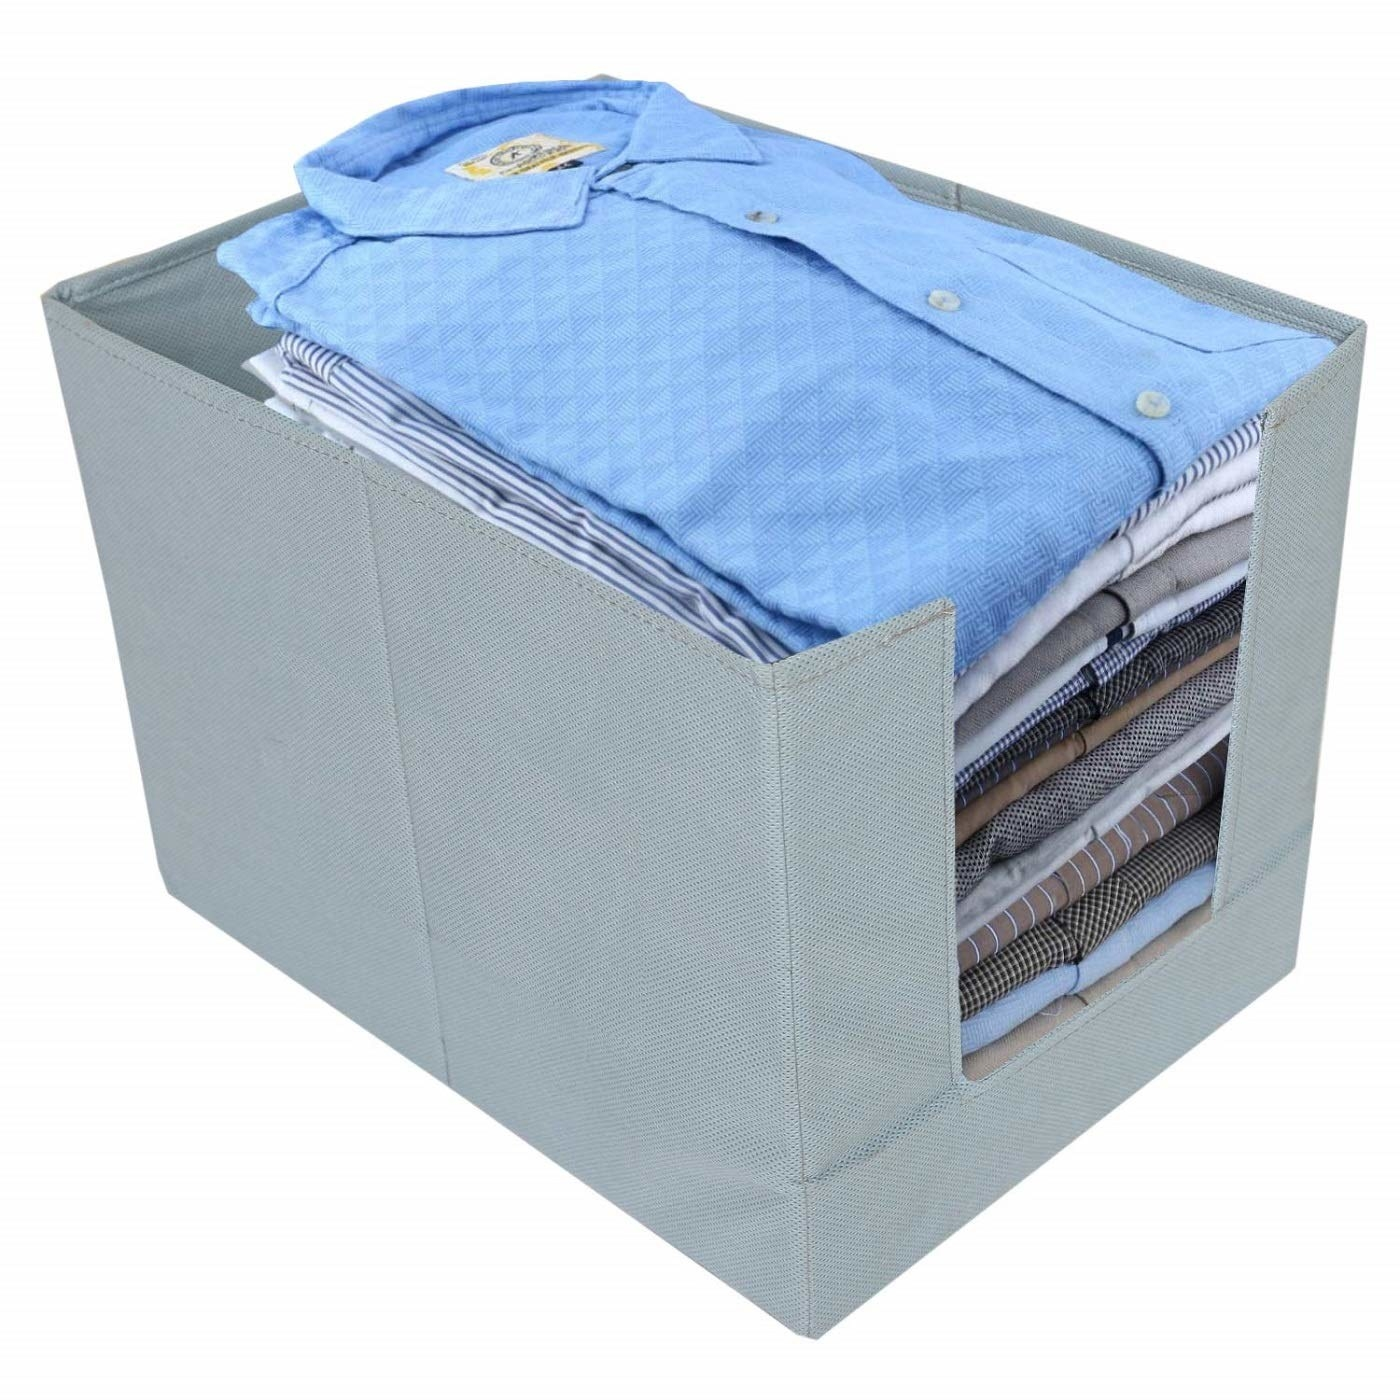 A wardrobe organiser with clothes in it